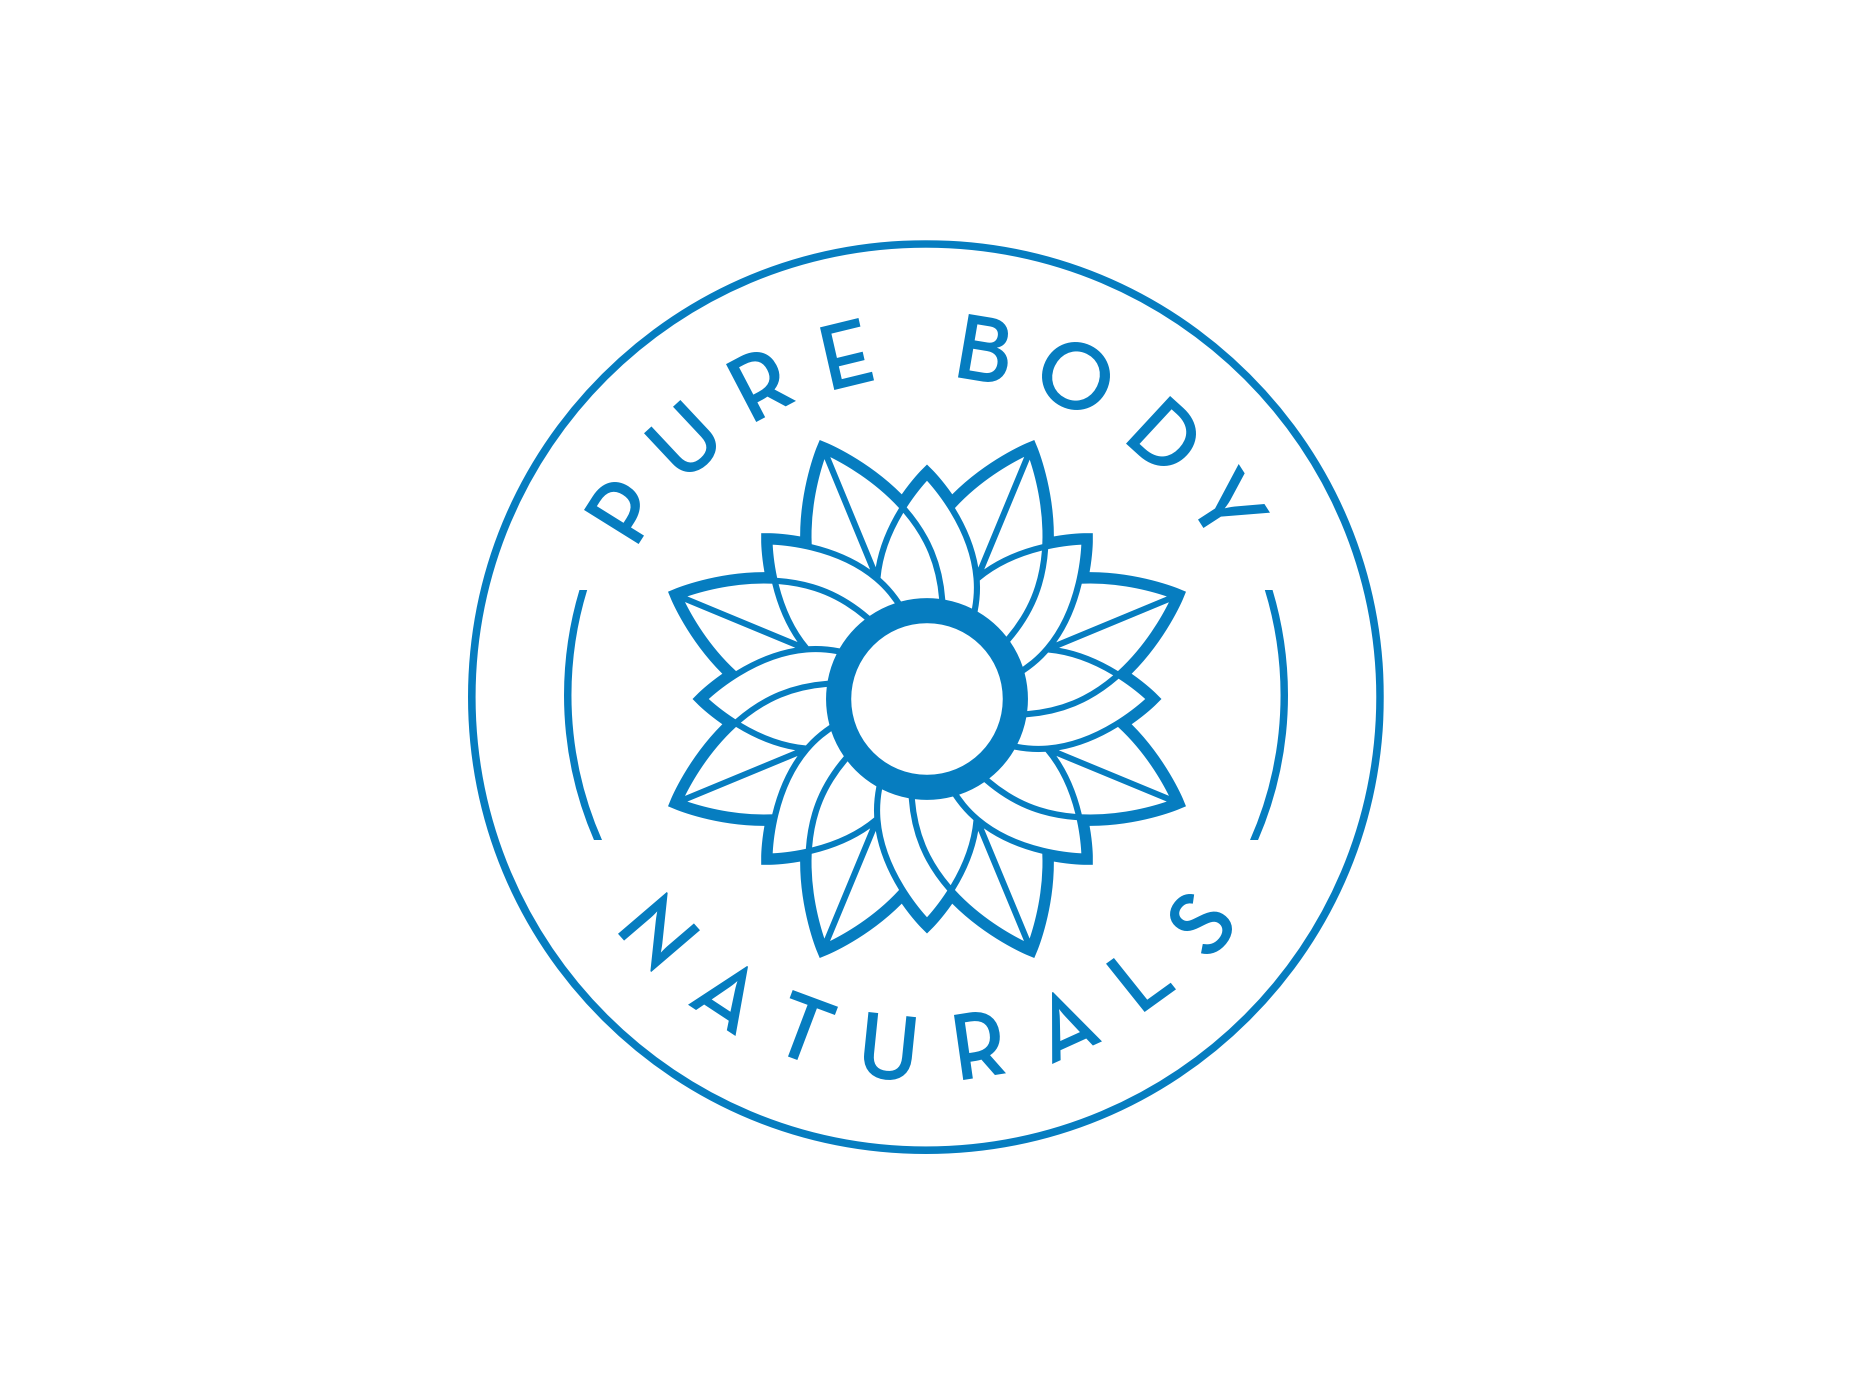 PURE BODY NATURALS - This full brand redesign started with the logo. That then turned into packaging and a responsive website. We wanted everything we touched for Pure Body Natural to be just that, Natural. You can see it in the colors we use for the packaging to the lighting that is used in the photography. Pure beauty. Crafted naturally.